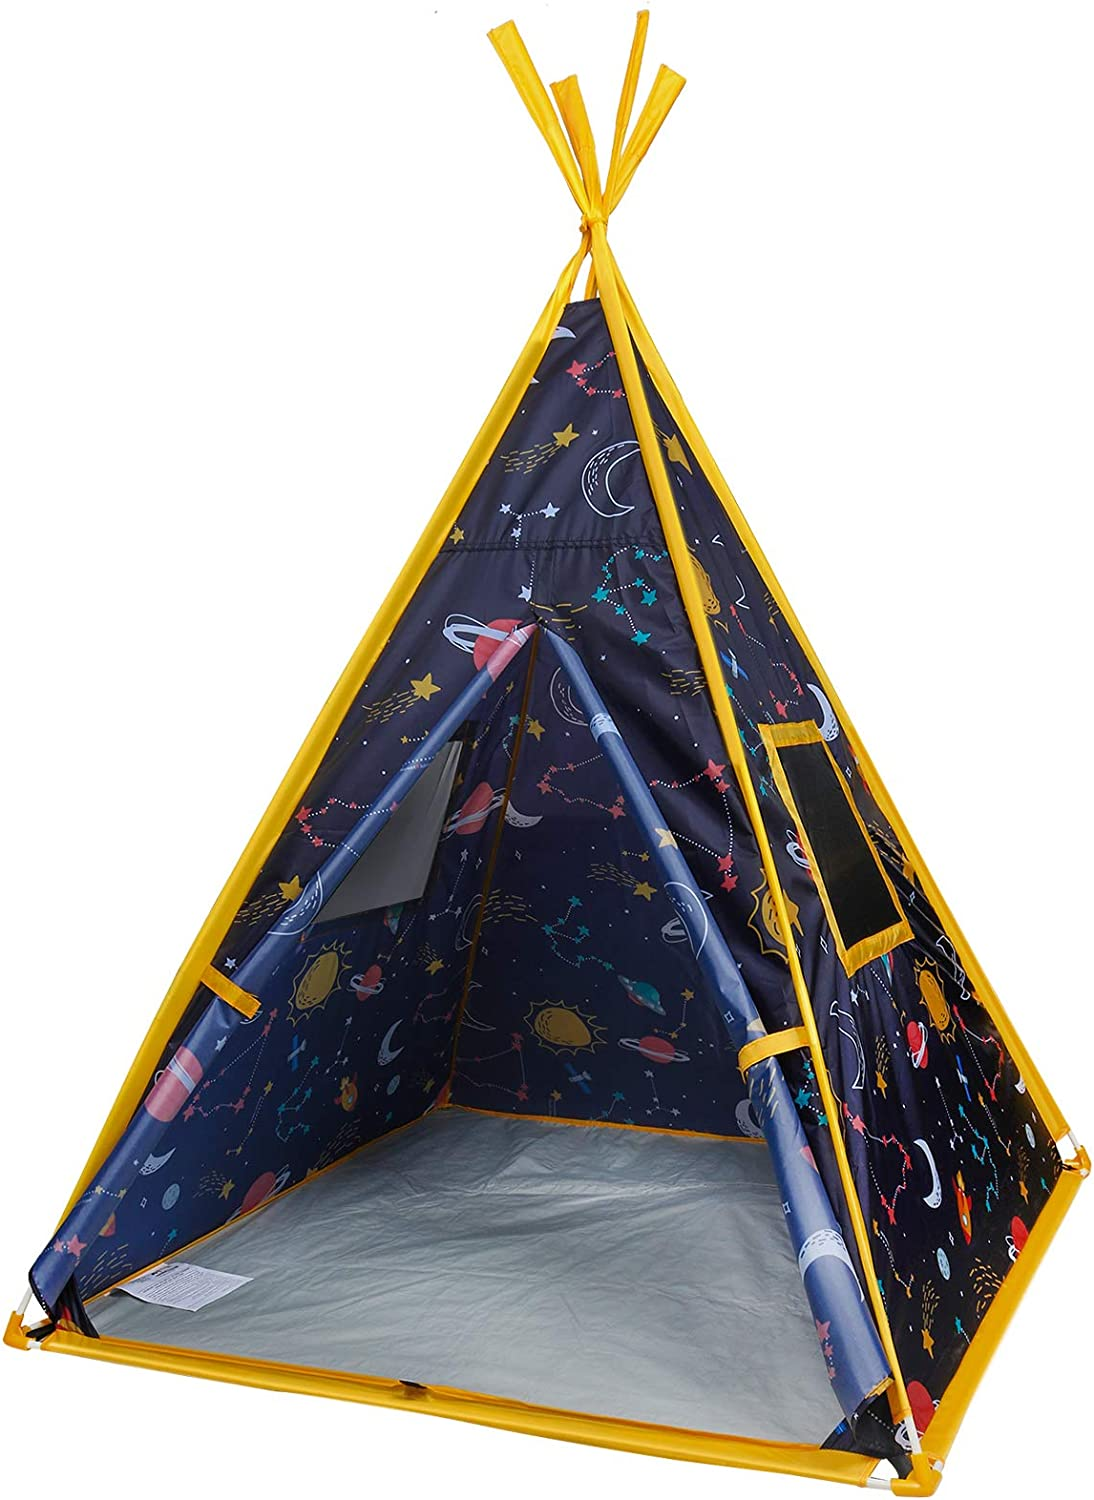 """MountRhino Kids Teepee Tent -44""""x44""""x61"""" Large Happy Hut Galaxy Space Kids Tent, Indoor Outdoor Playhouse Tents for Boys and Girls,Kids Indian Teepee Play Tent ,Perfect Kid's Gift"""